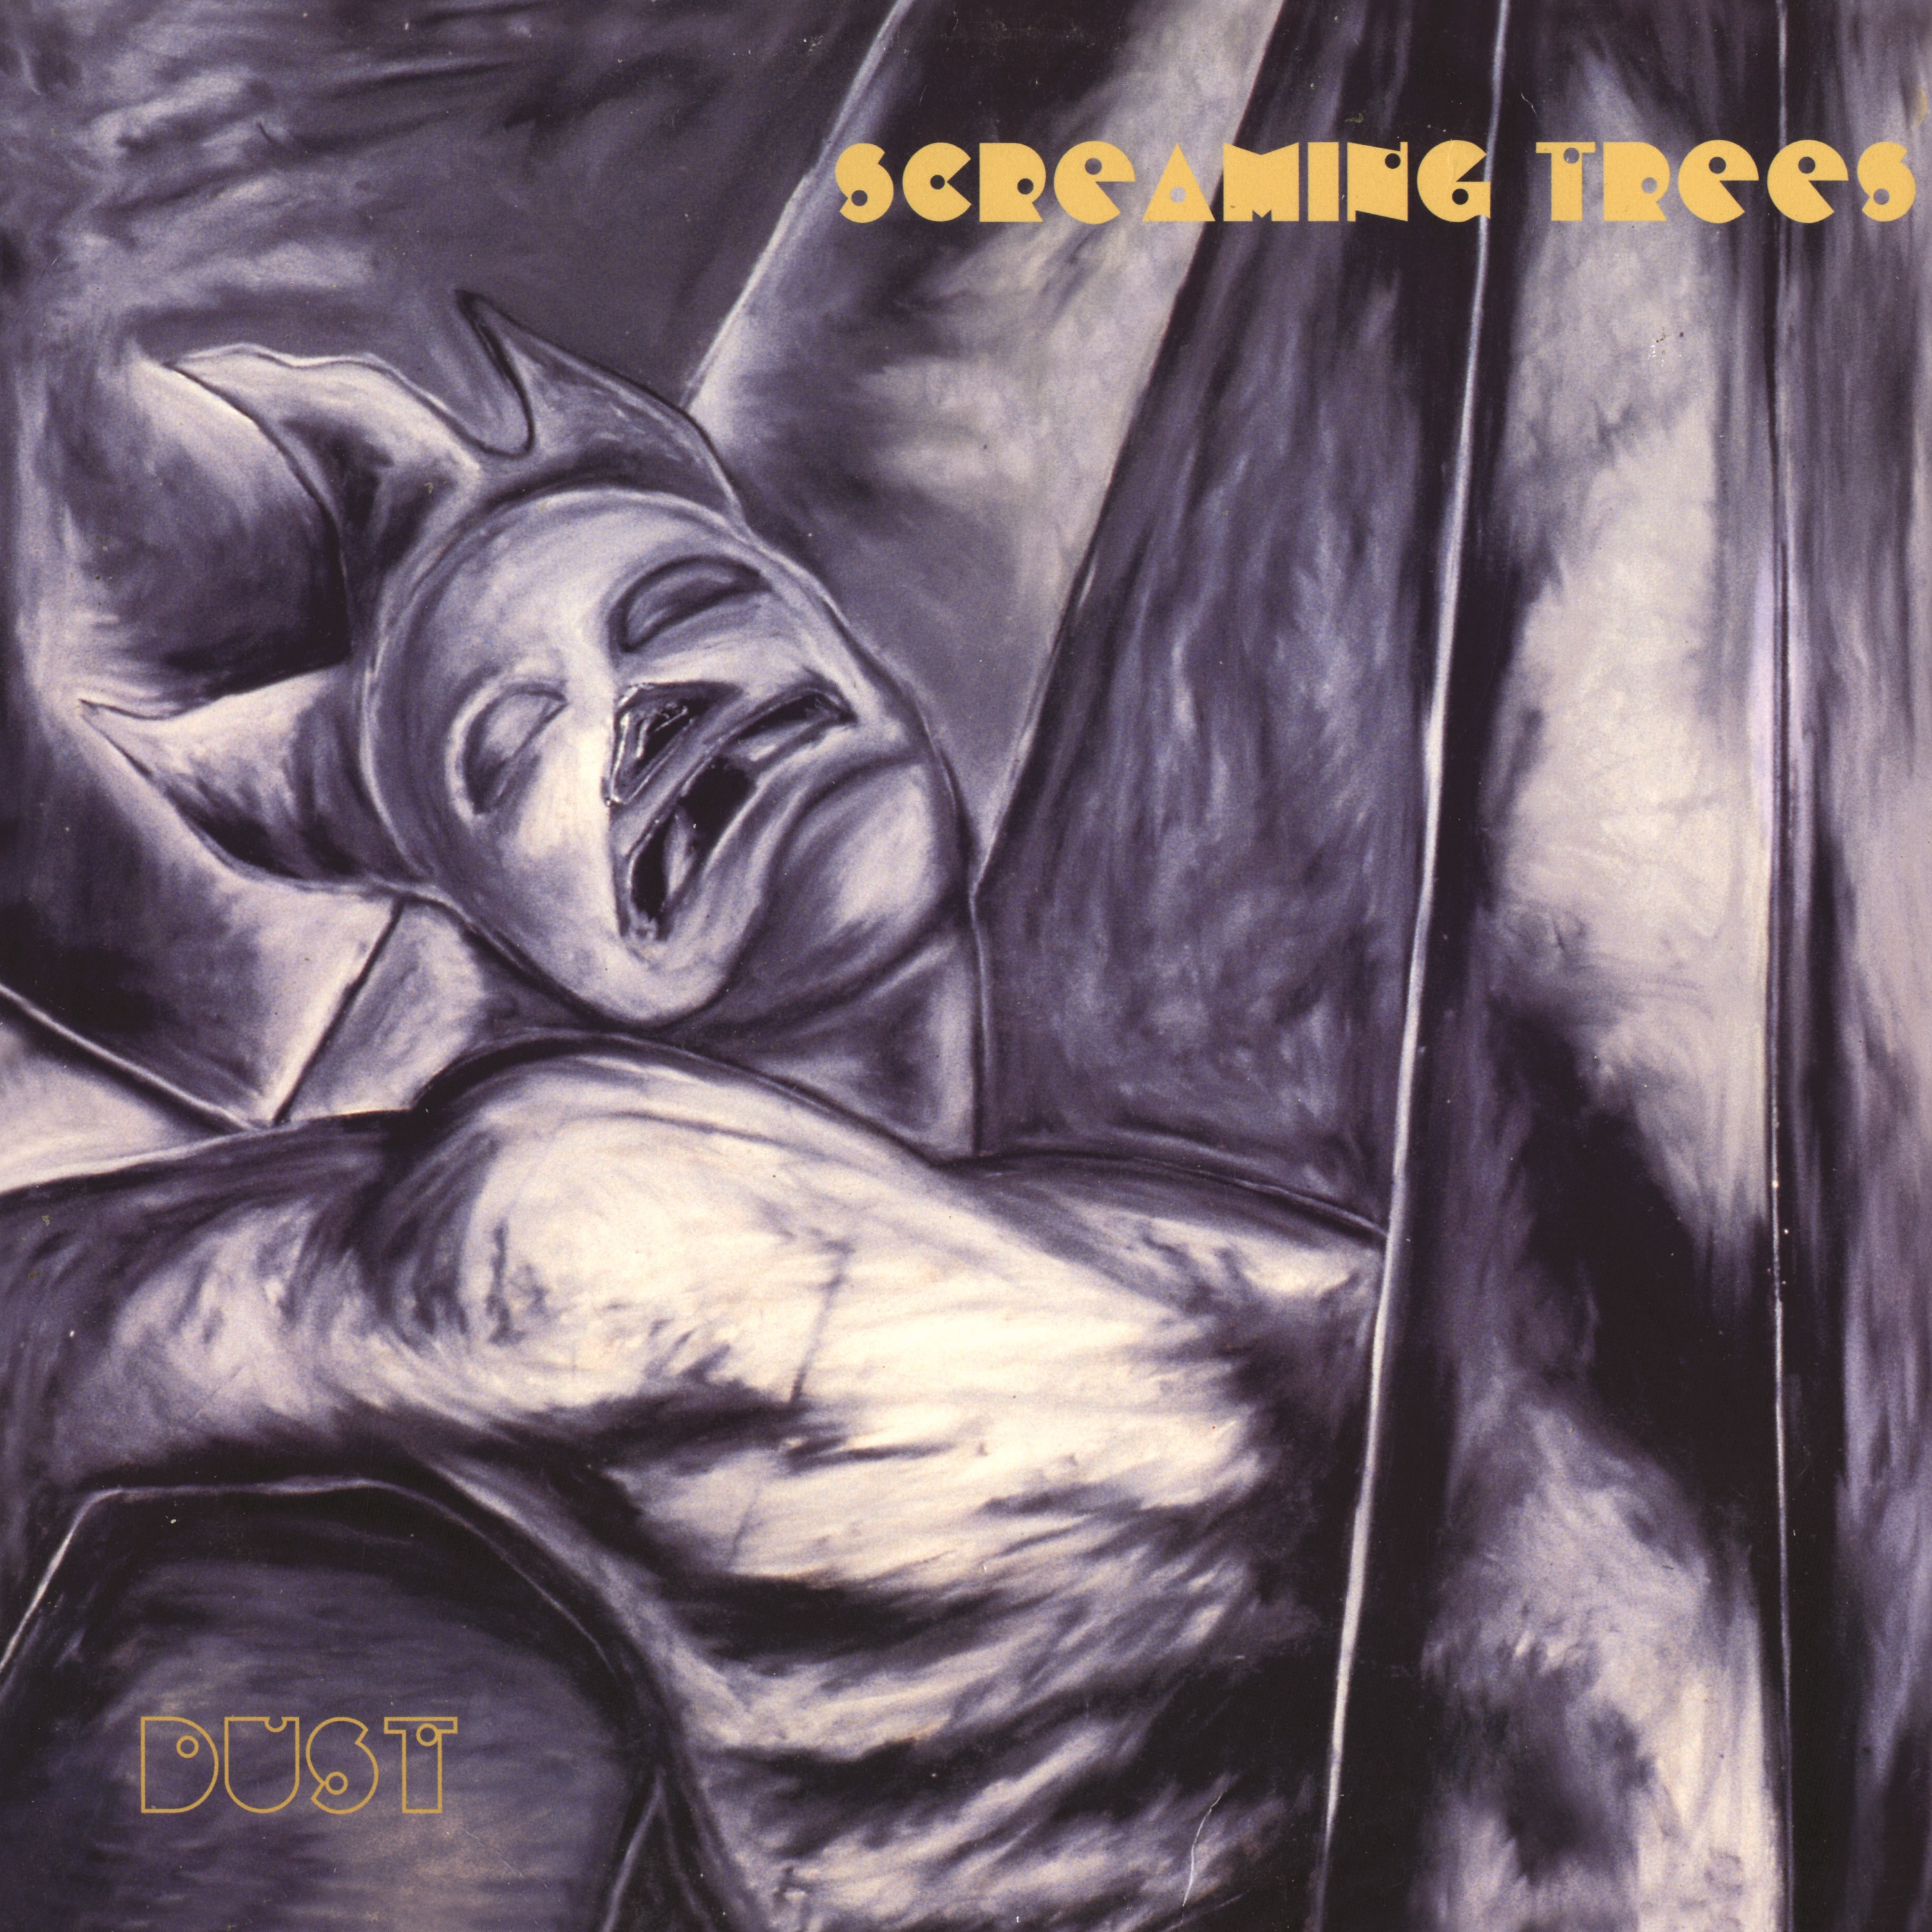 Screaming Trees – Dust – Reissue